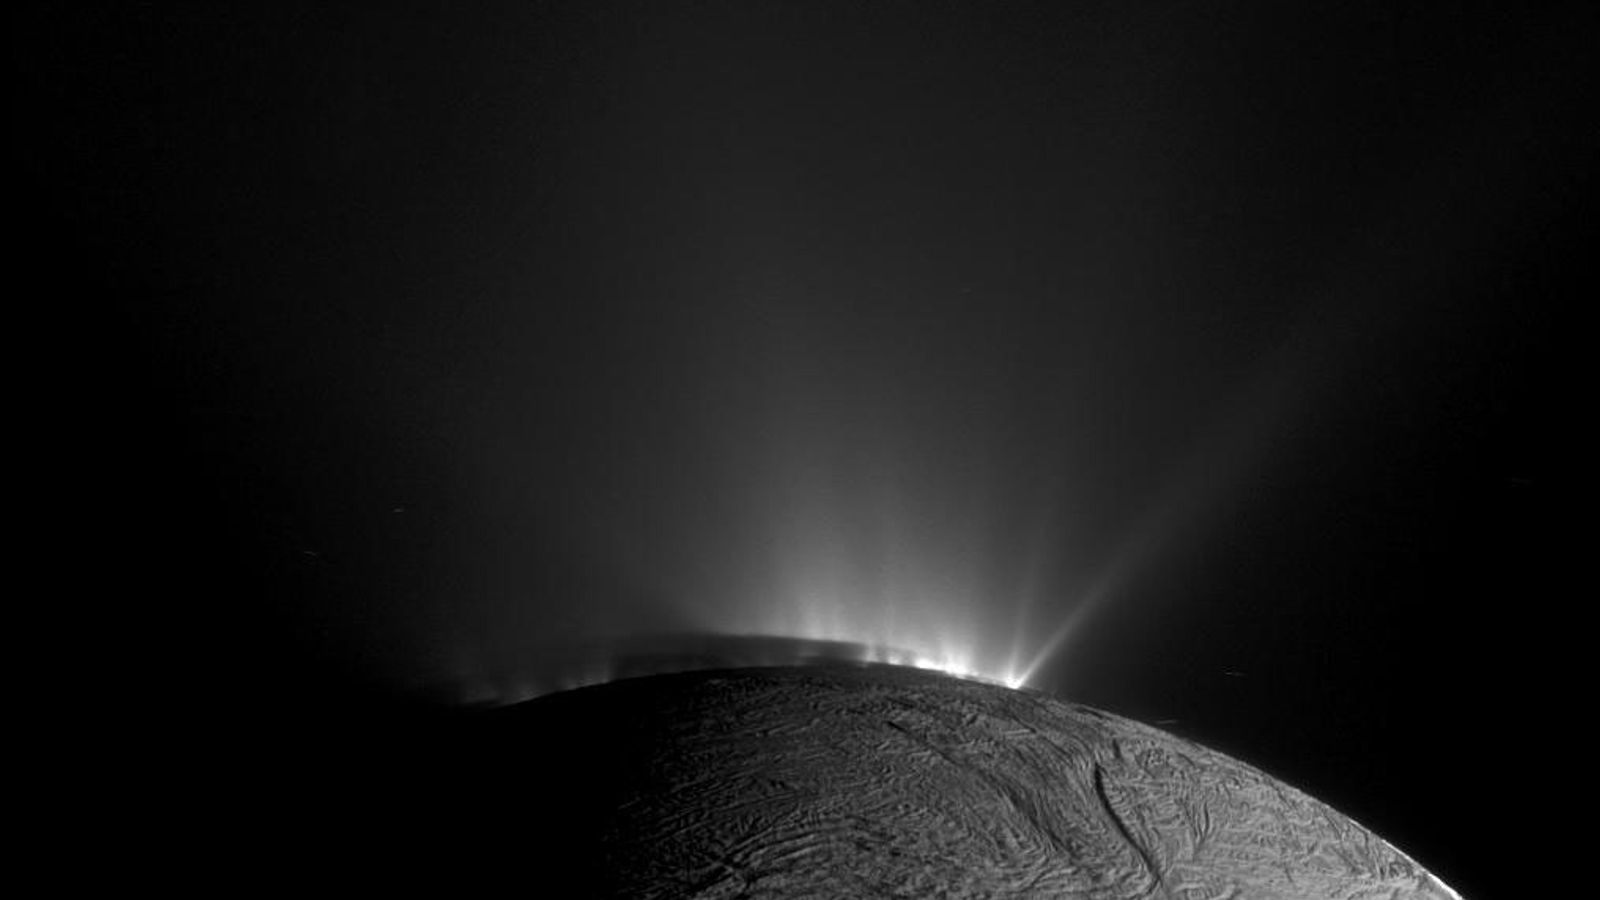 NASA's Cassini spacecraft caught this image of geysers spewing icy material from Saturn's moon Enceladus.